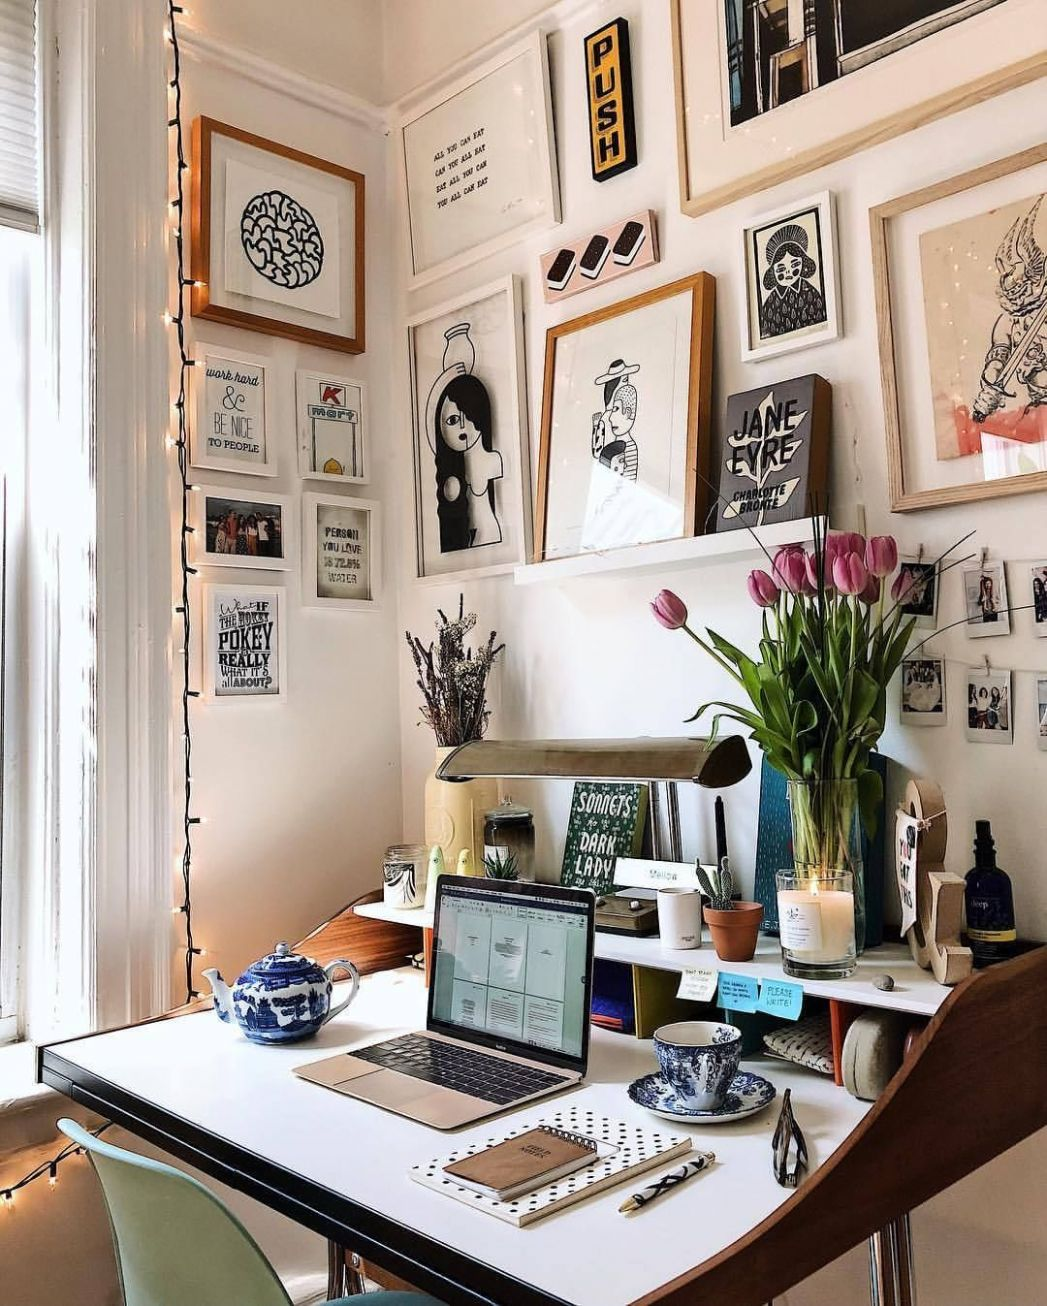 Astonishing small home office lighting ideas | Quirky home decor ..